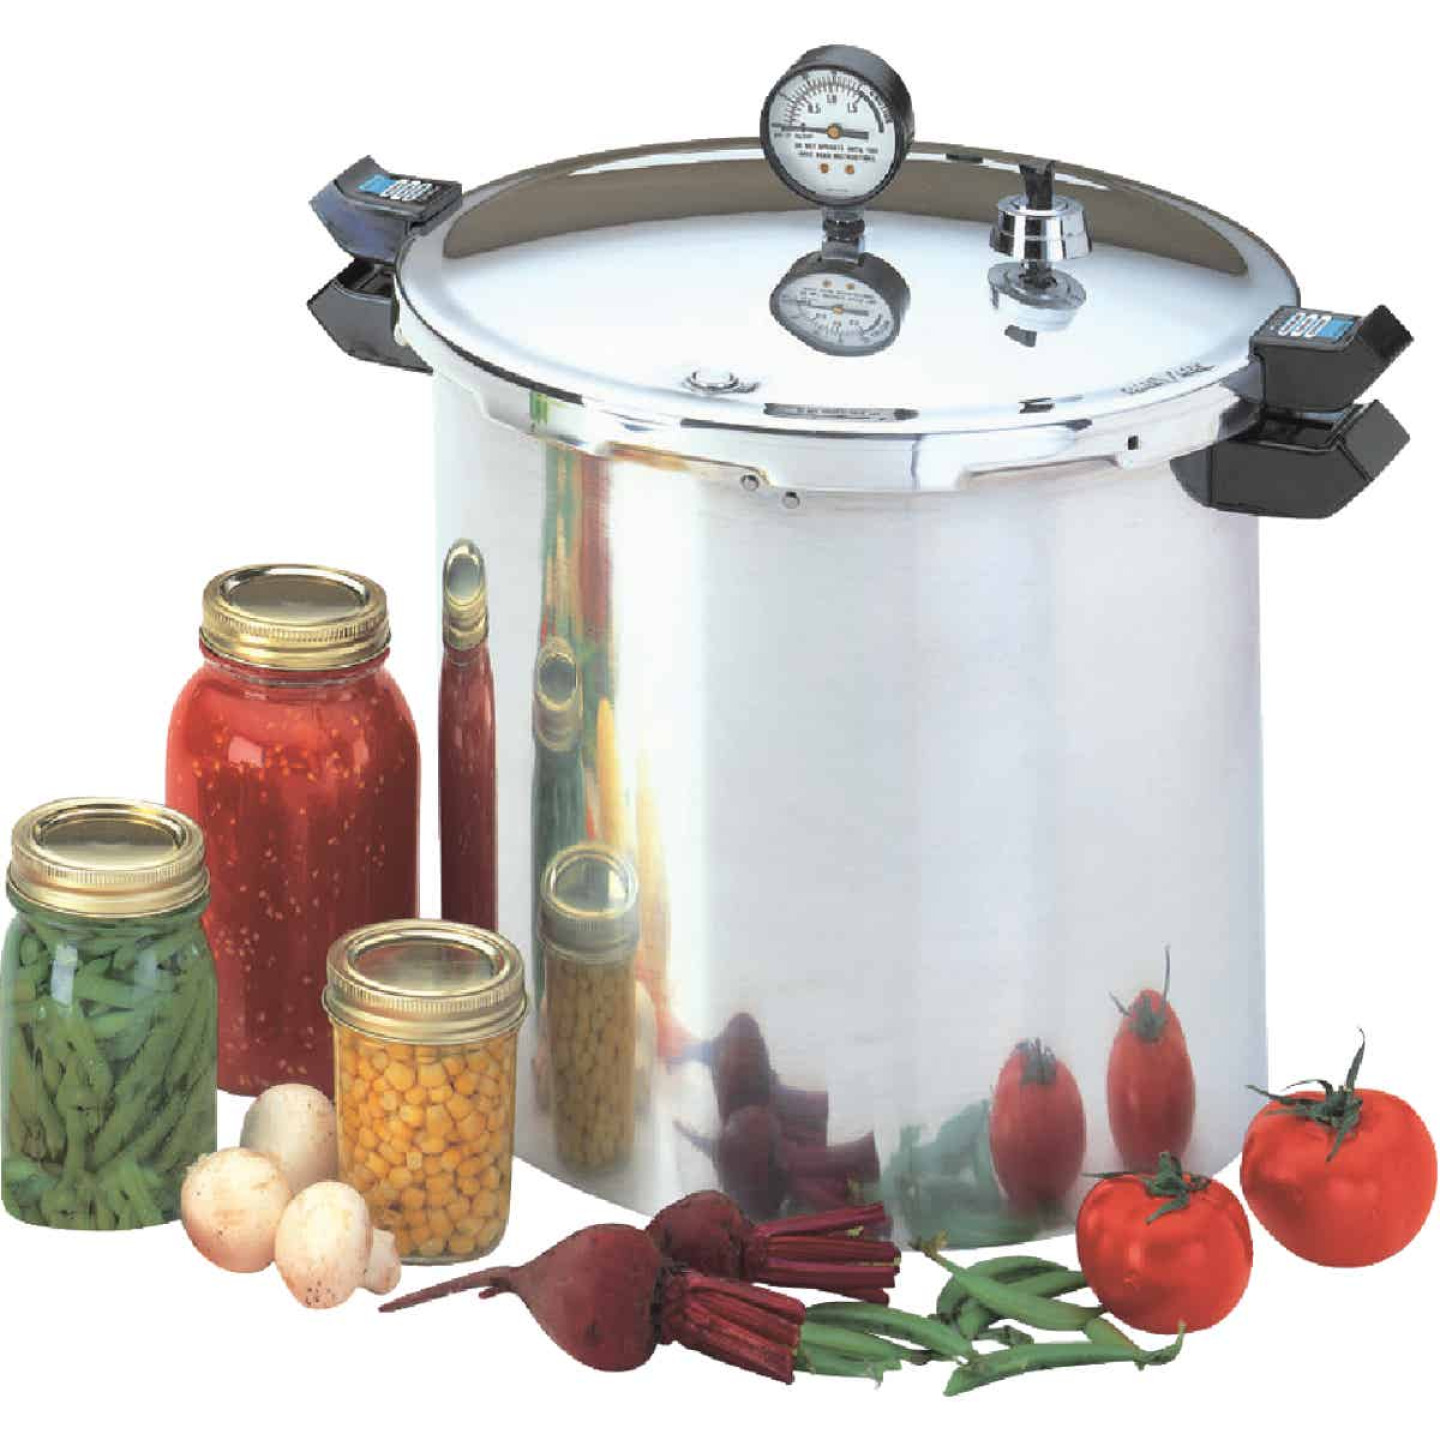 Presto 23 qt Presto Cooker and Canner Image 1